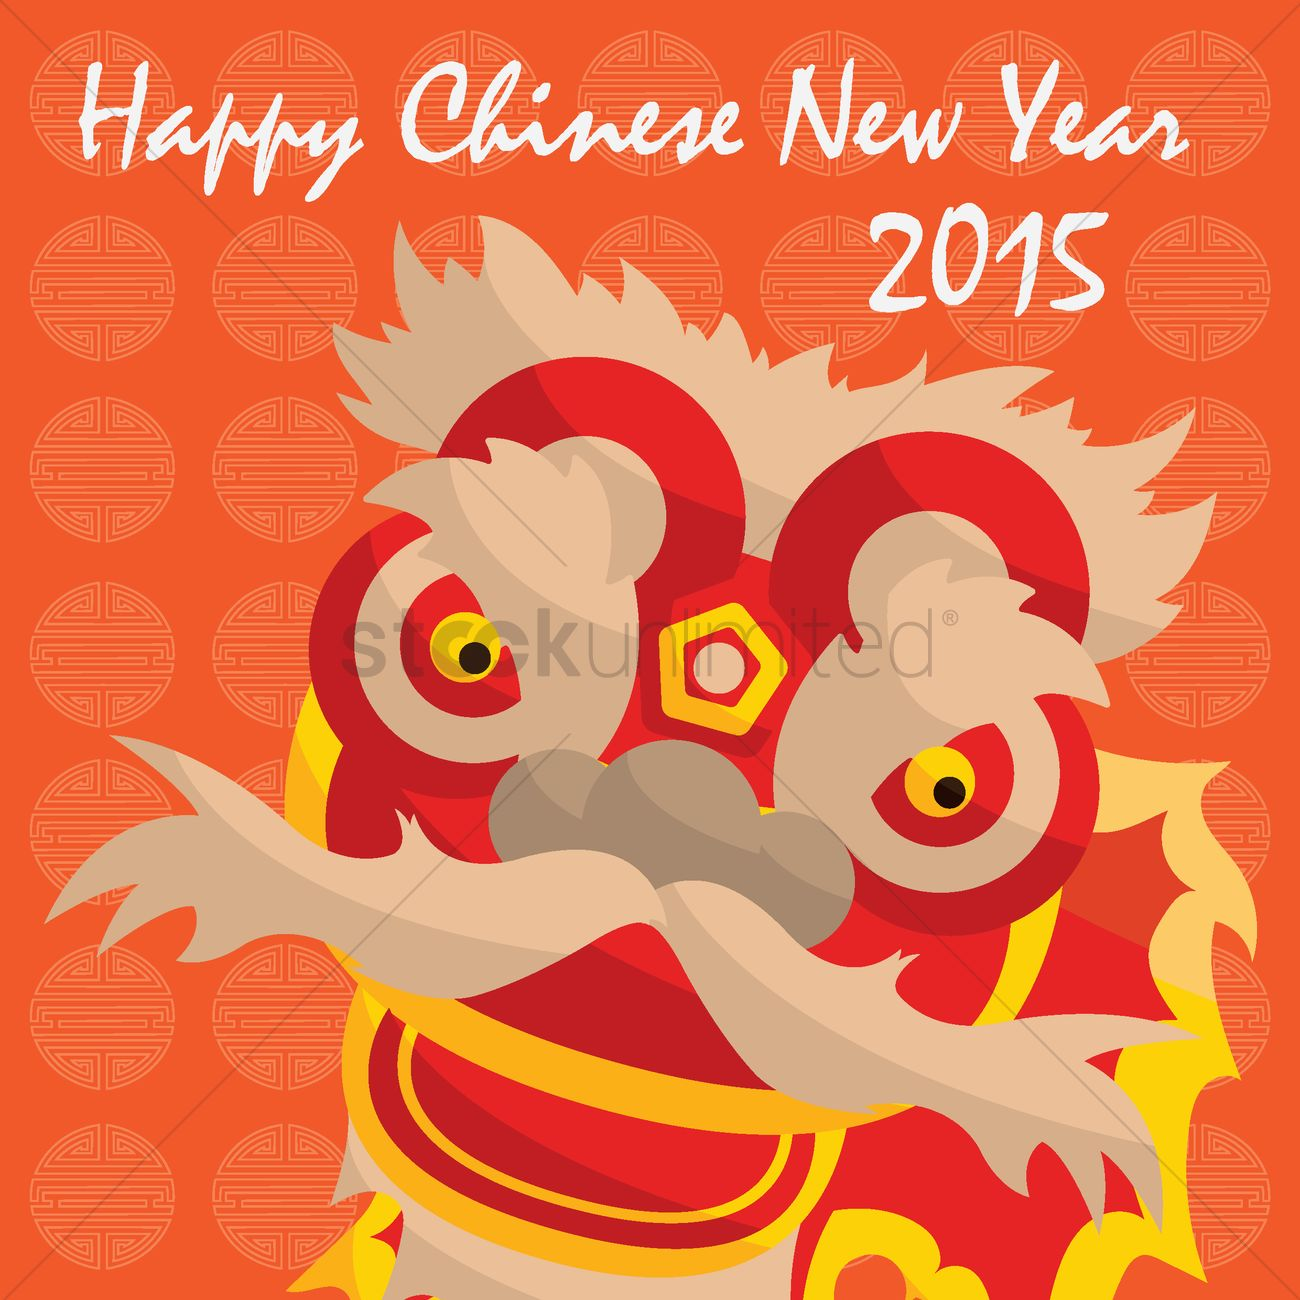 2015 Chinese Near Year Greetings Vector Image 1410735 Stockunlimited